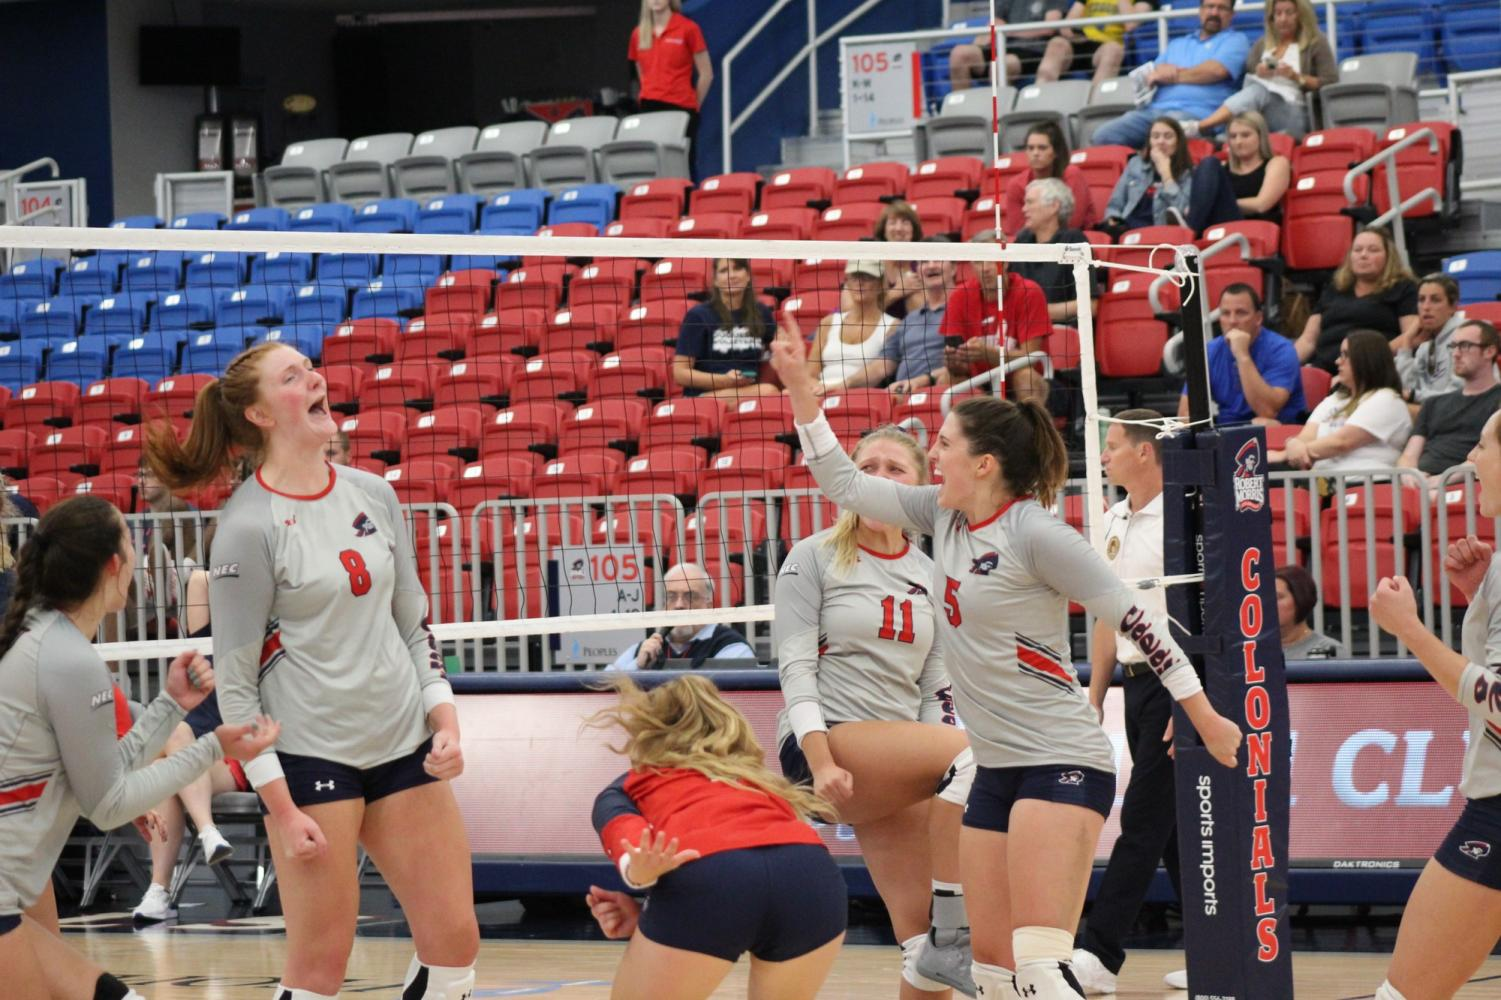 Granger, Starr win NEC player/coach of the year awards, three receive all-conference